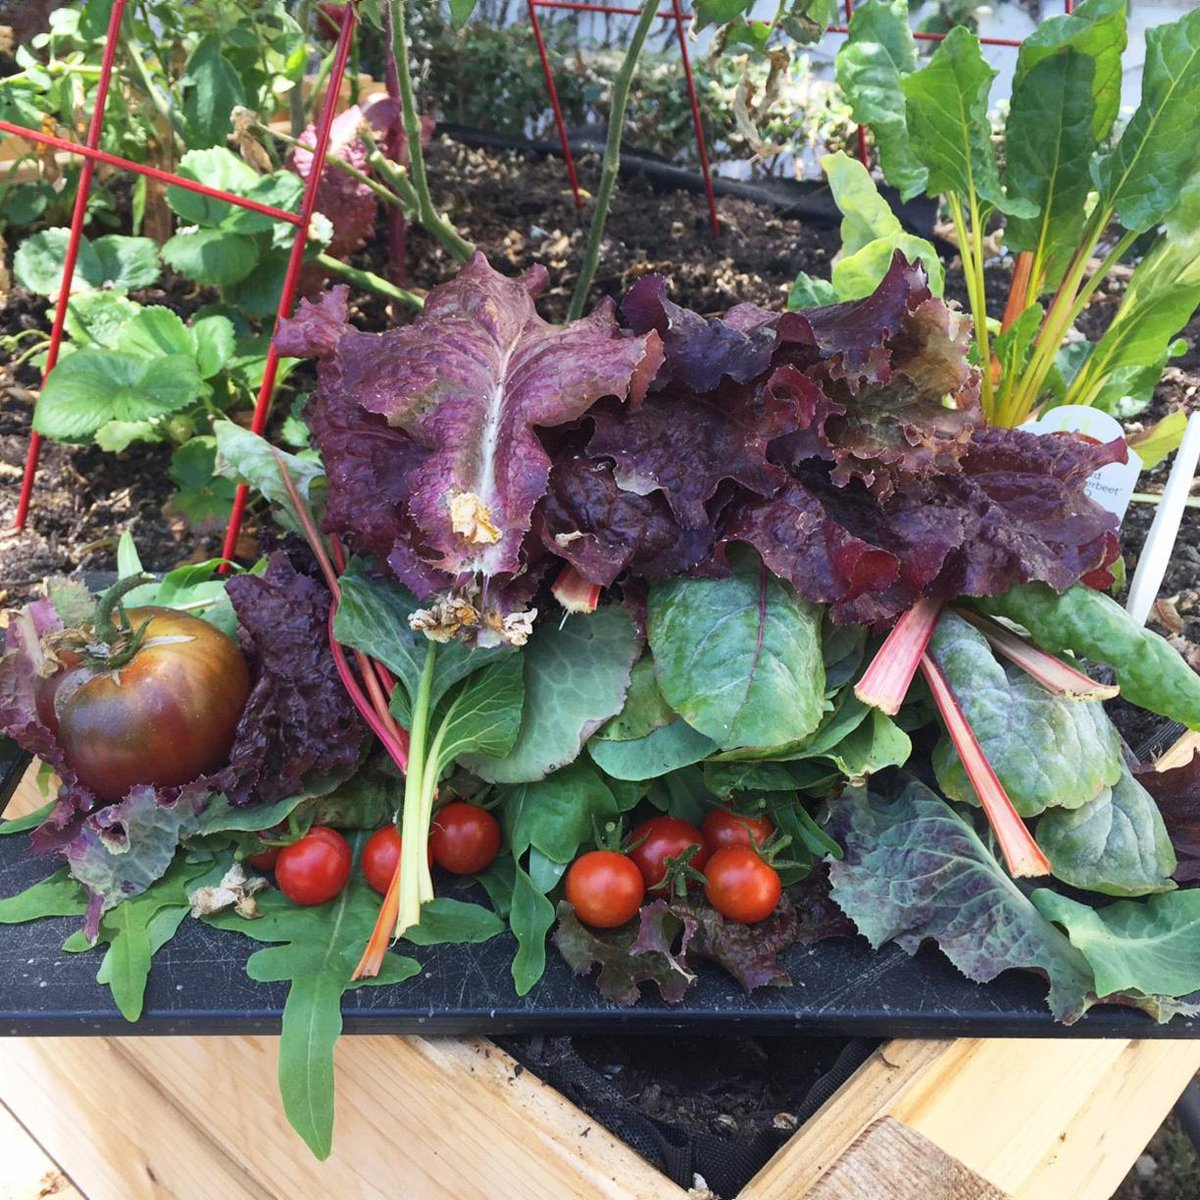 Garden Update! You may recall the edible garden we built for #EarthWeek back in April. We're stoked to share our recent first harvest and show you how much it's grown. Gardening tips, always welcome  <br>http://pic.twitter.com/D0EH003TRf